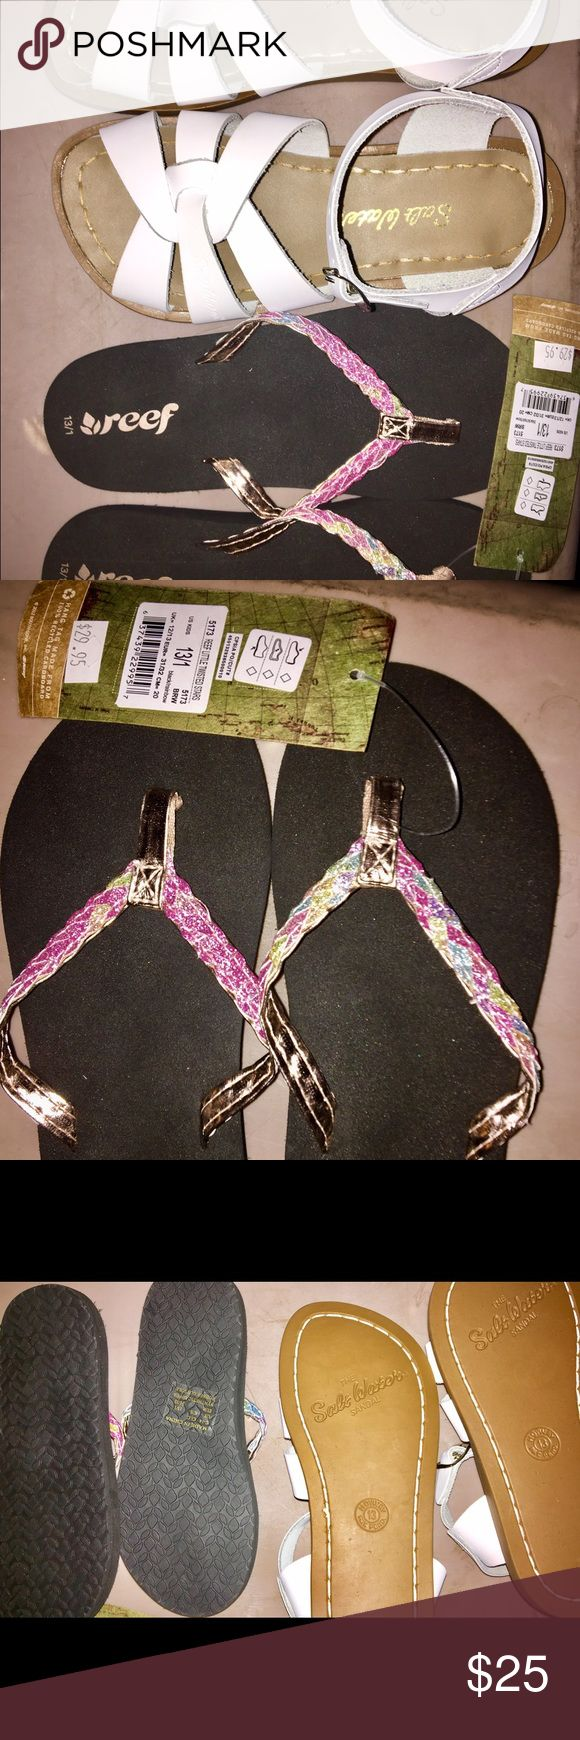 Girls Size 13/1 Sandals. 2 pairs Both pairs are Brand New. Girls size 13/1 Sandals. 'Reef' flip-flops are silver & pink Iridescent. Classic white 'Saltwater' Sandals. Reef  Shoes Sandals & Flip Flops